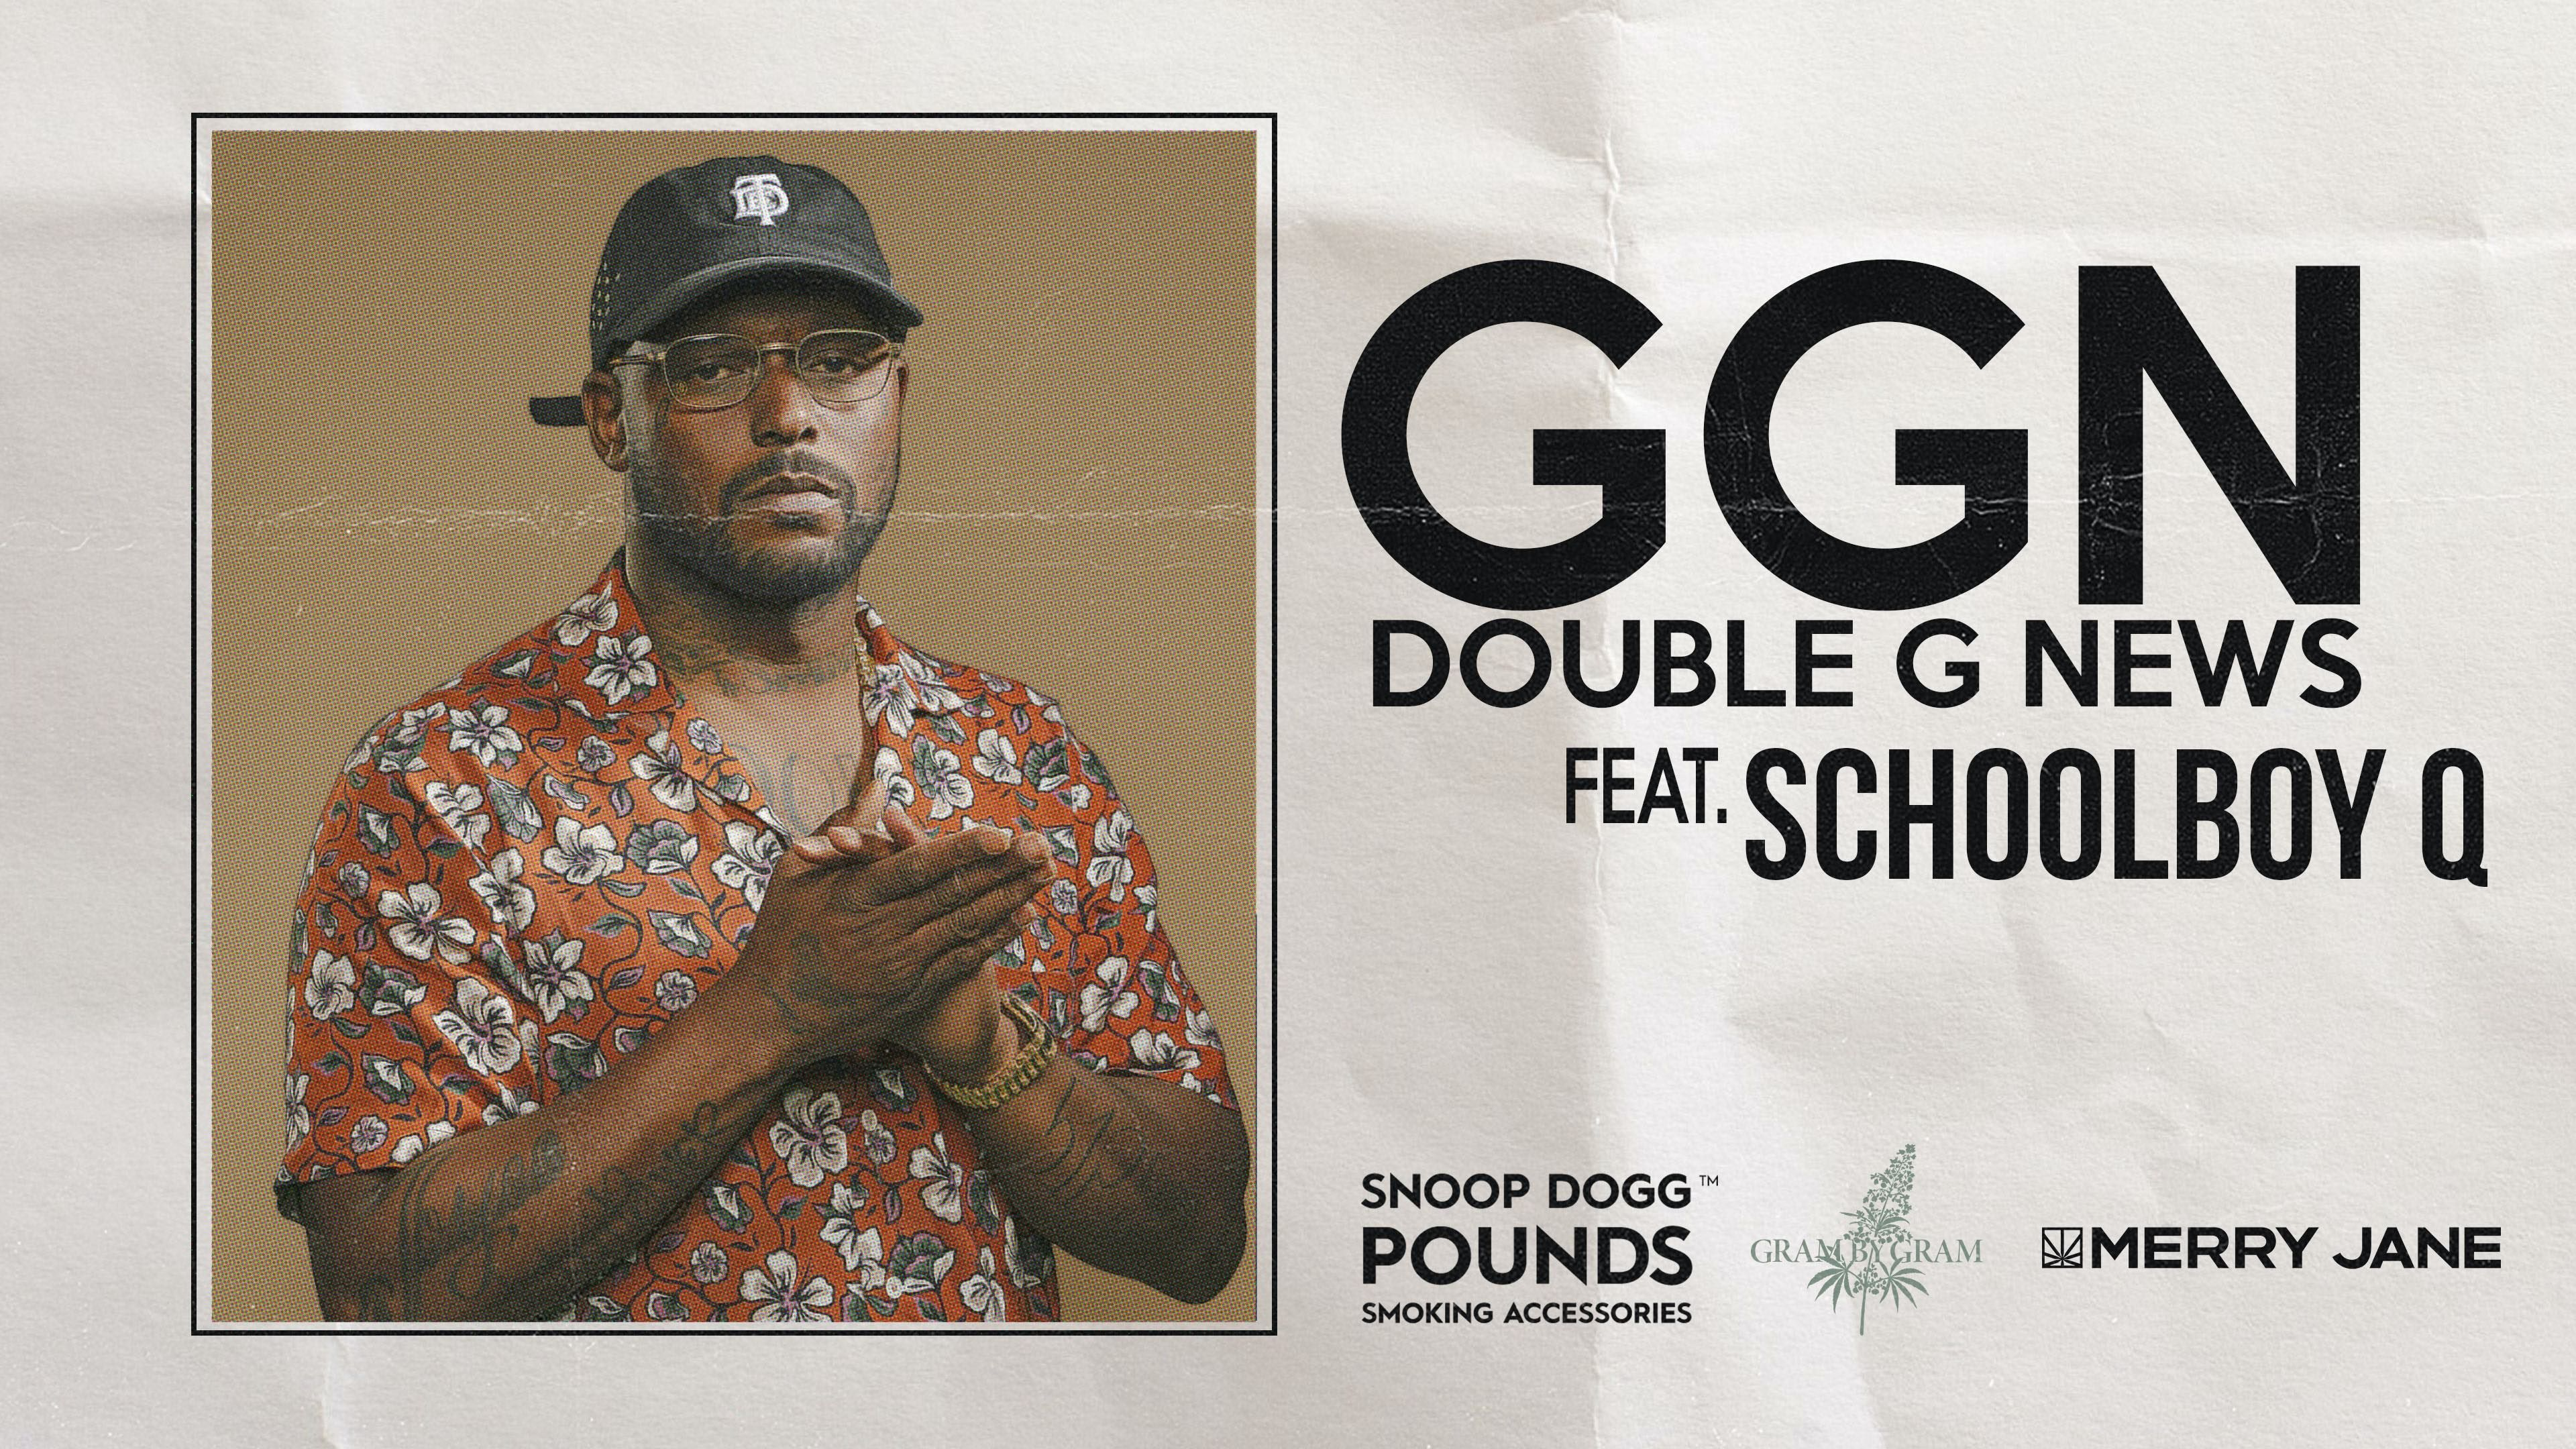 GGN Double Groovy News With Schoolboy Q & Snoop Dogg